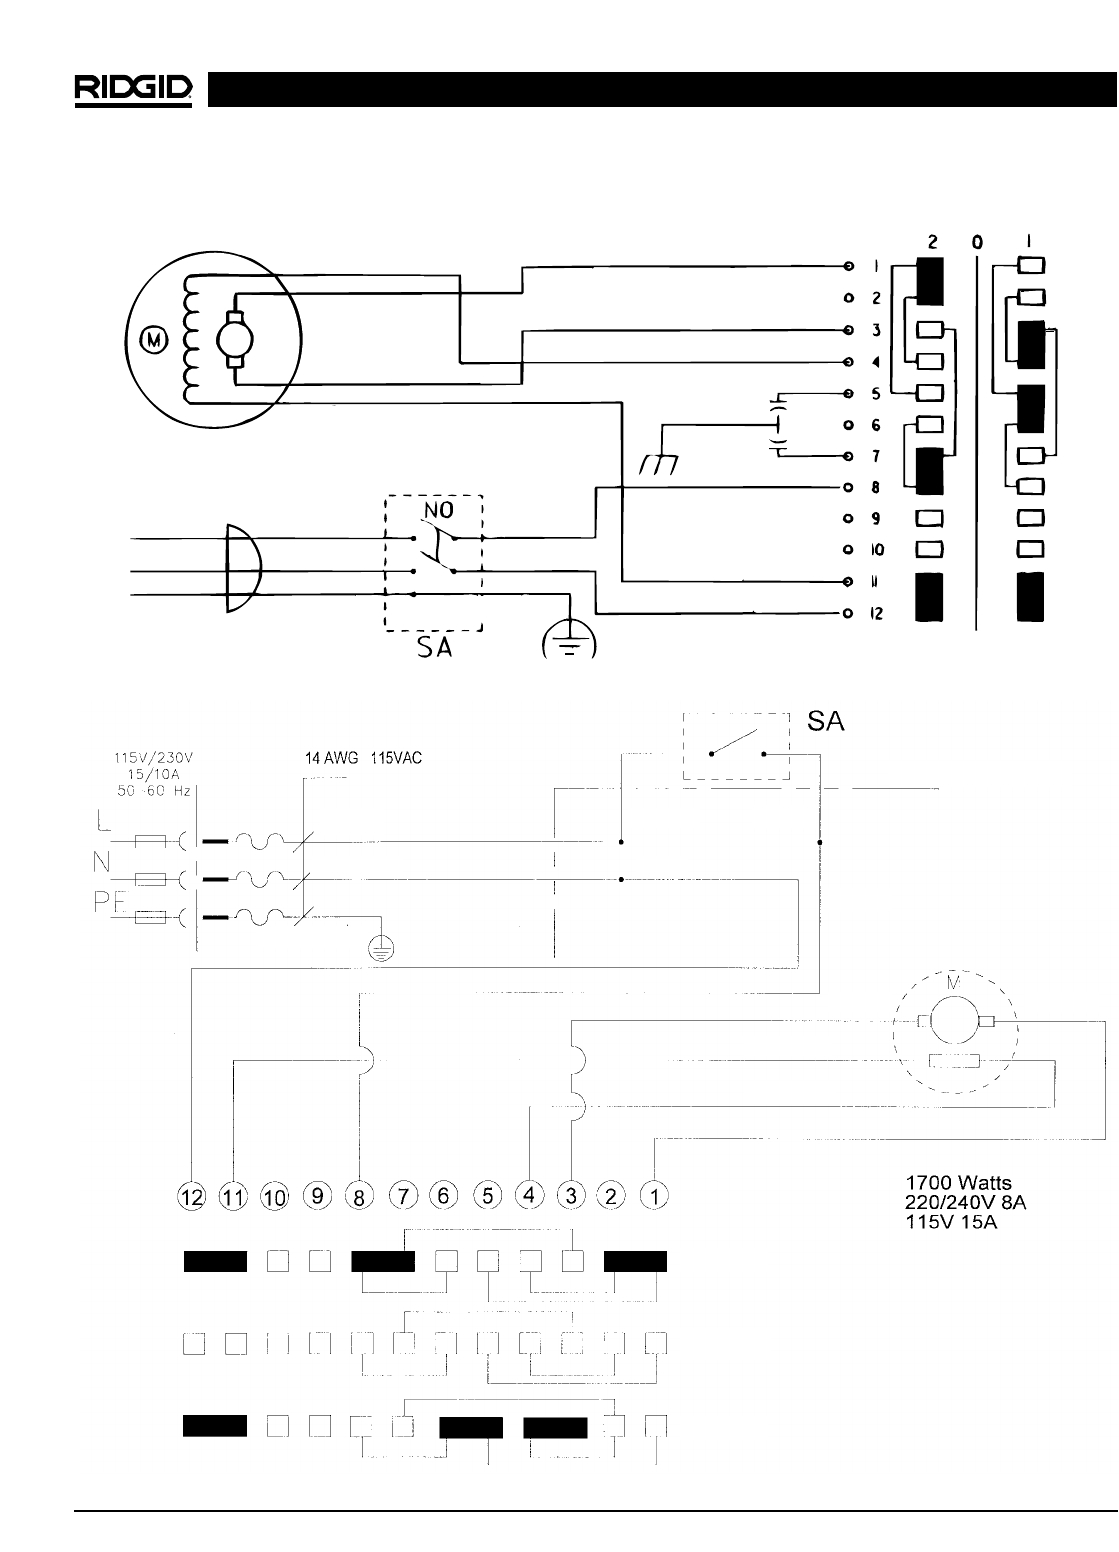 hight resolution of ridgid 4 wire 220v plug wiring diagram circuit diagram images